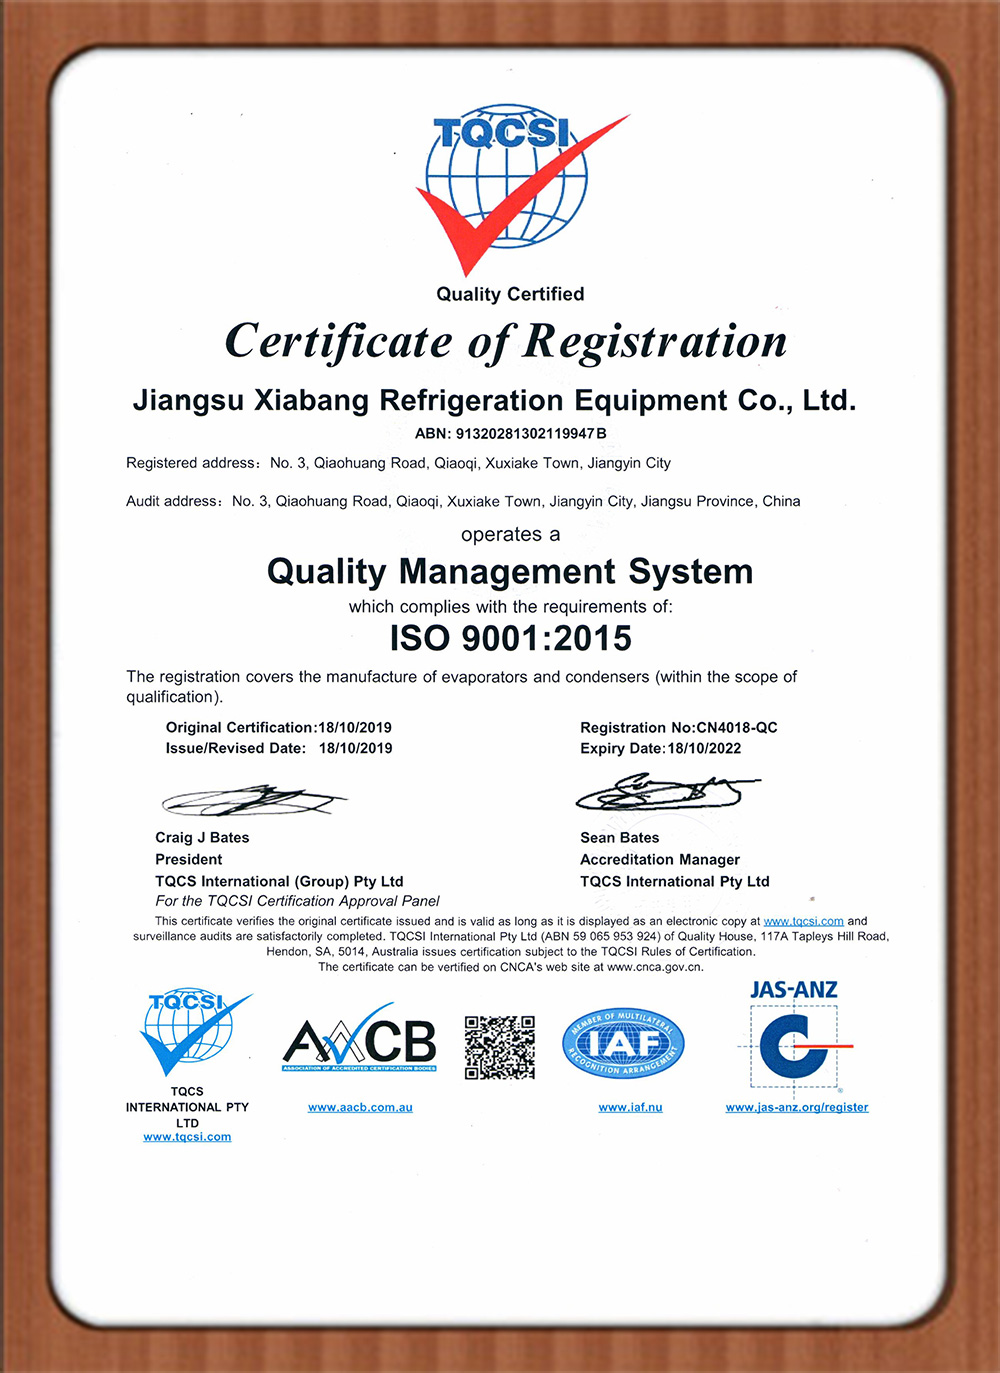 Quality System Certificate in English